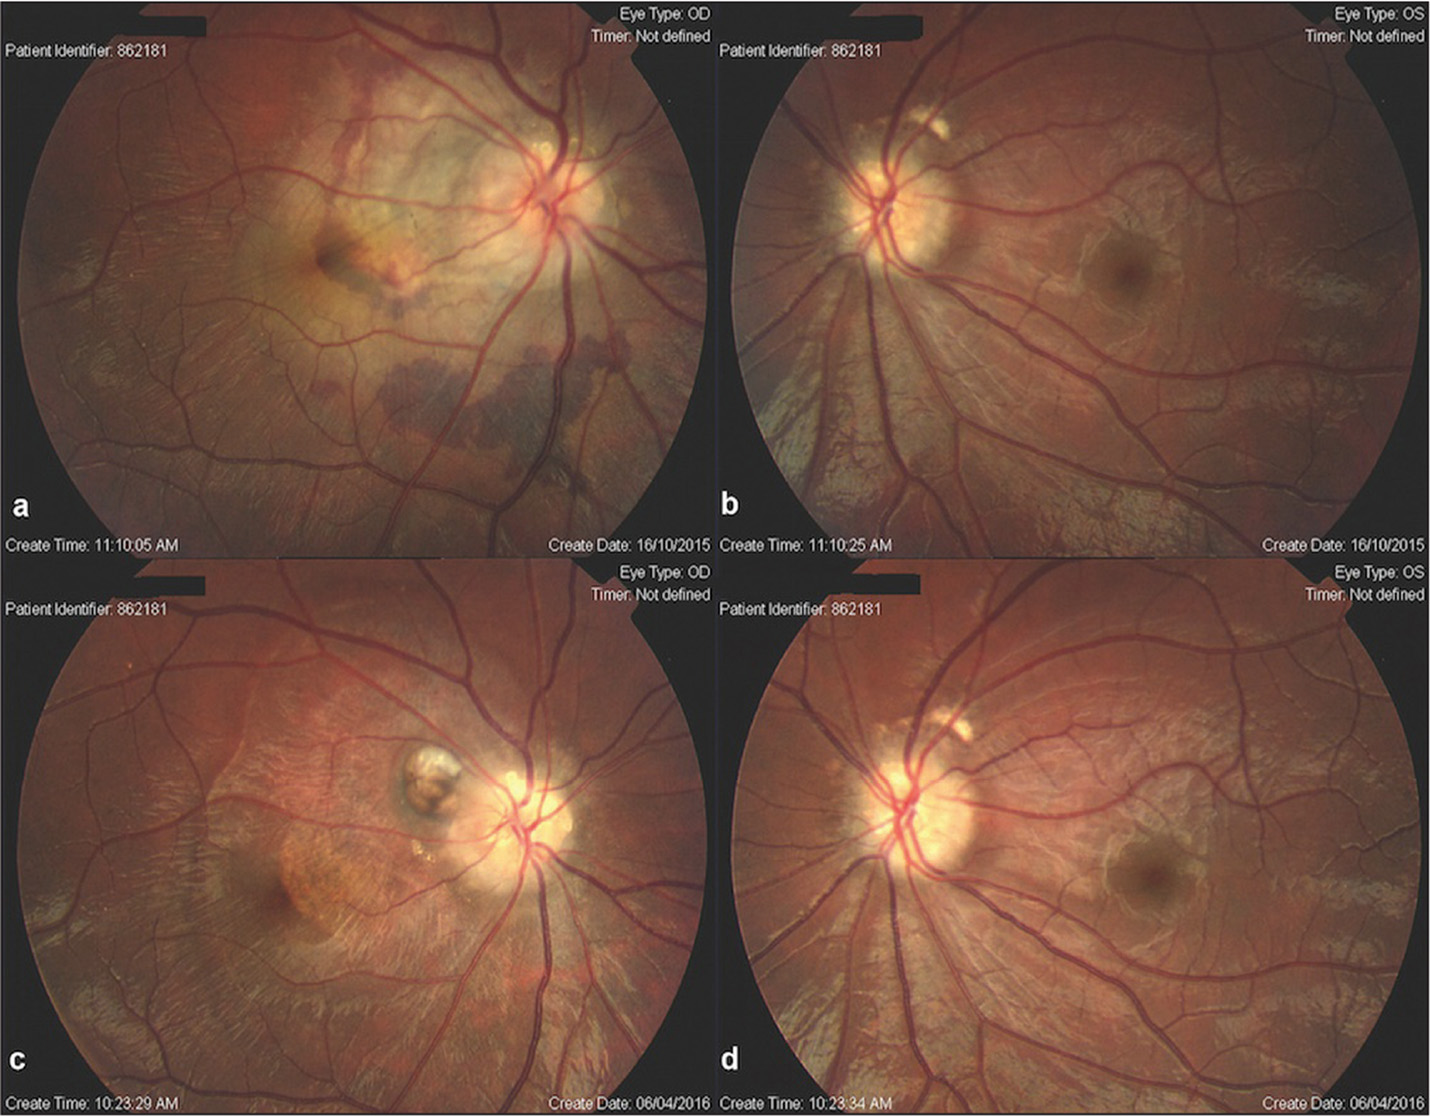 Fundus photographs. (A) Papilledema with the peripapillary choroidal neovascular membrane (CNVM) superotemporal to the optic disc, subretinal fluid involving the fovea, subretinal hemorrhage temporal and inferior to the scar, and retinal striae in the right eye on initial presentation. (B) Indistinct peripapillary border in the left eye on presentation. (C) Peripapillary choroidal scar superotemporal to optic disc and pigmentary changes in the nasal macular area in the right eye 3 months following injection. (D) Distinct peripapillary border in the left eye 3 months following injection.